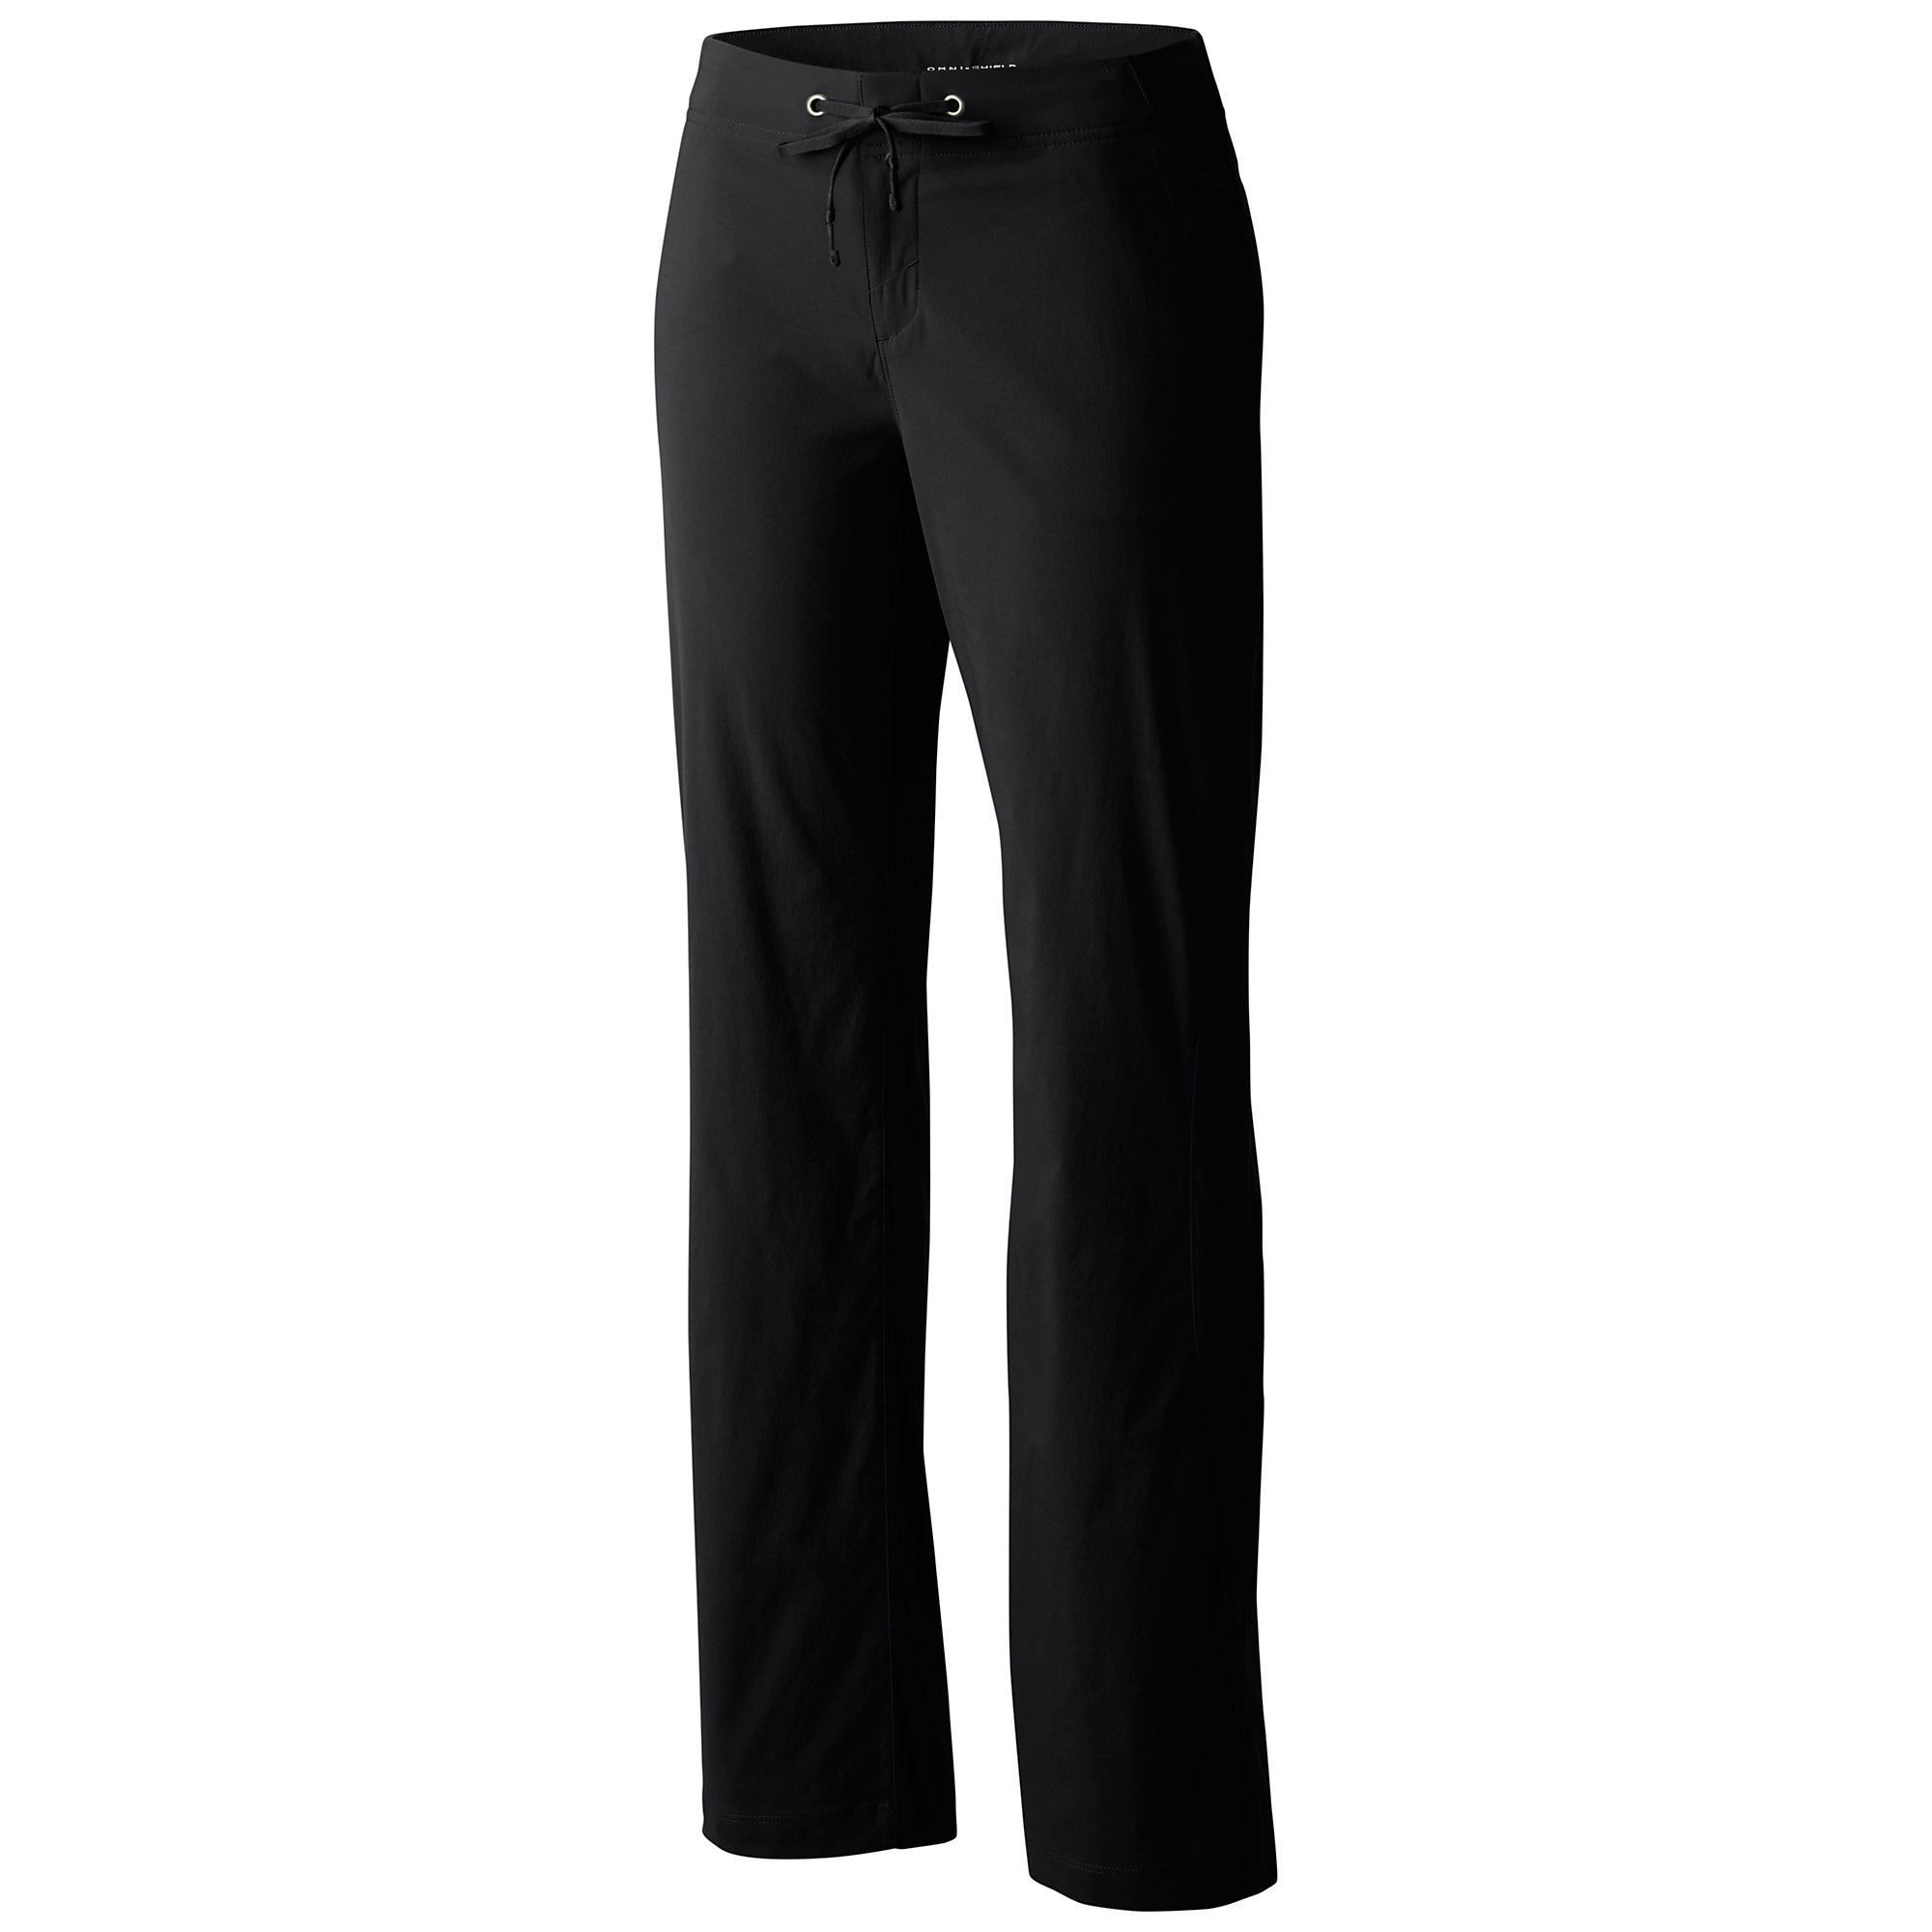 Columbia Anytime Outdoor Full Leg Pant